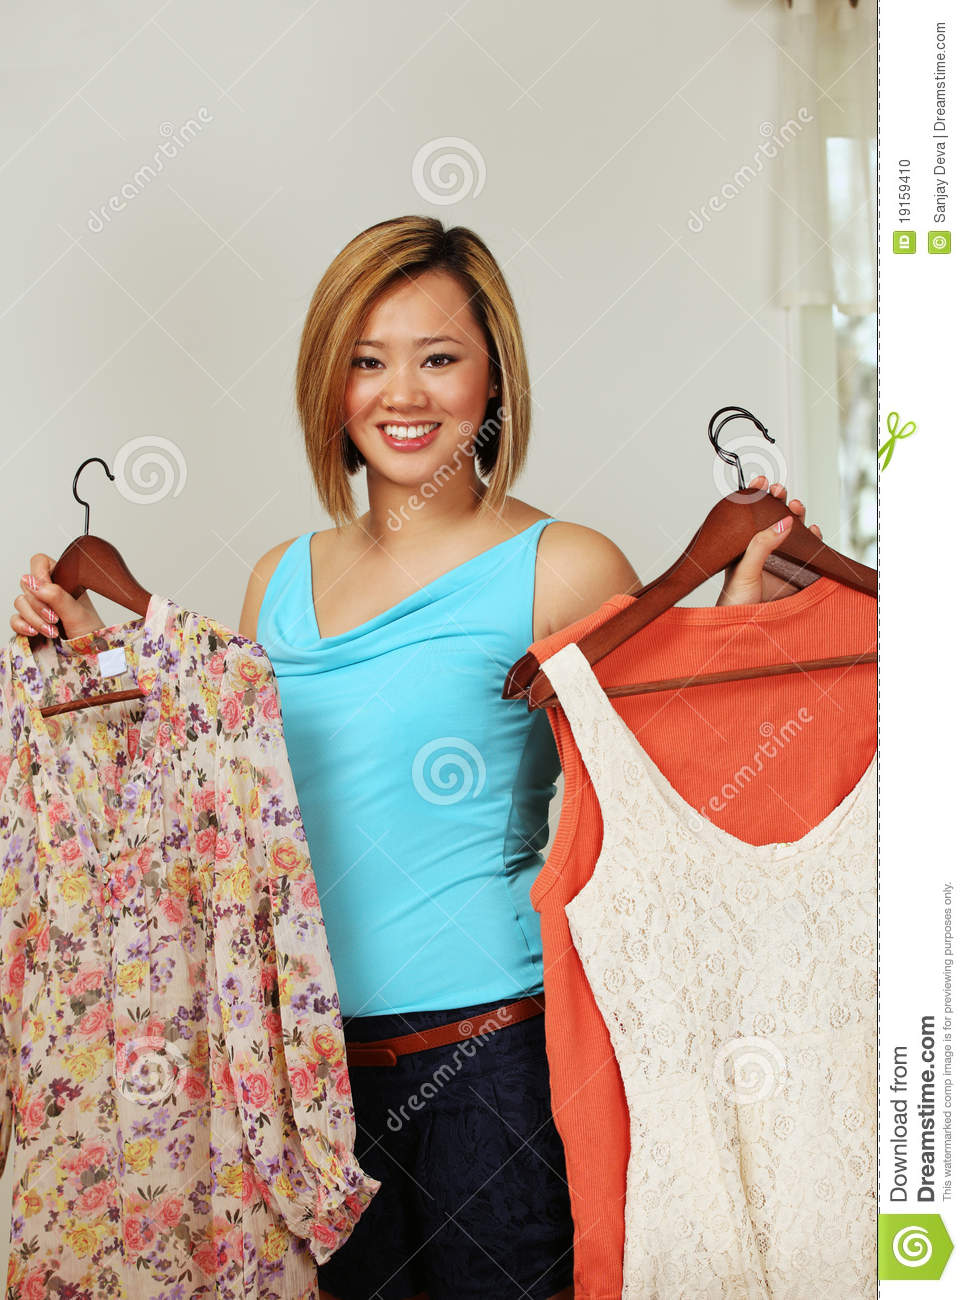 smiling shop assistant stock photo image  smiling shop assistant